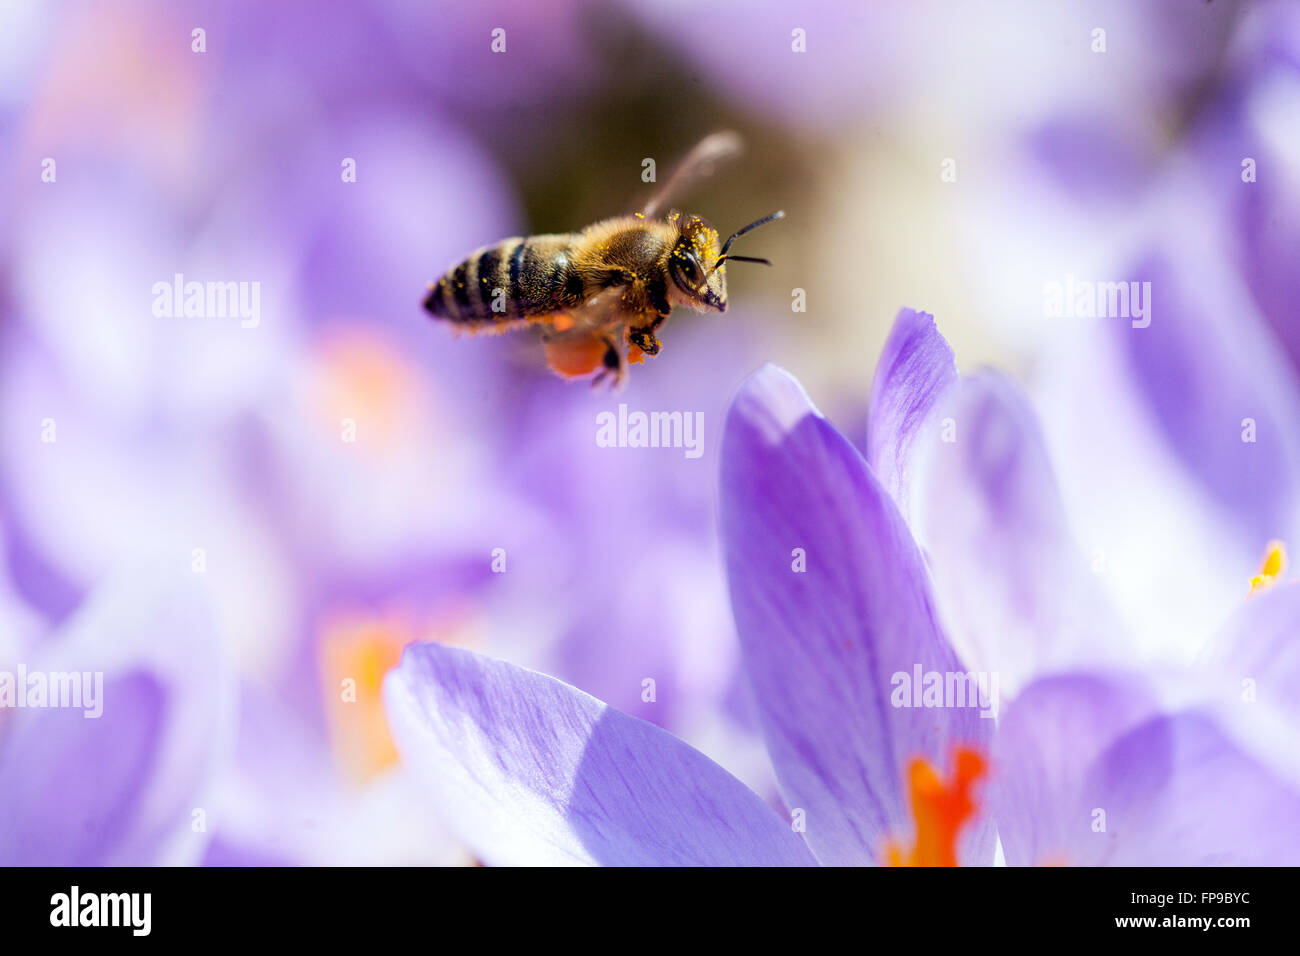 Close up Bee flying above crocus flowers - Stock Image